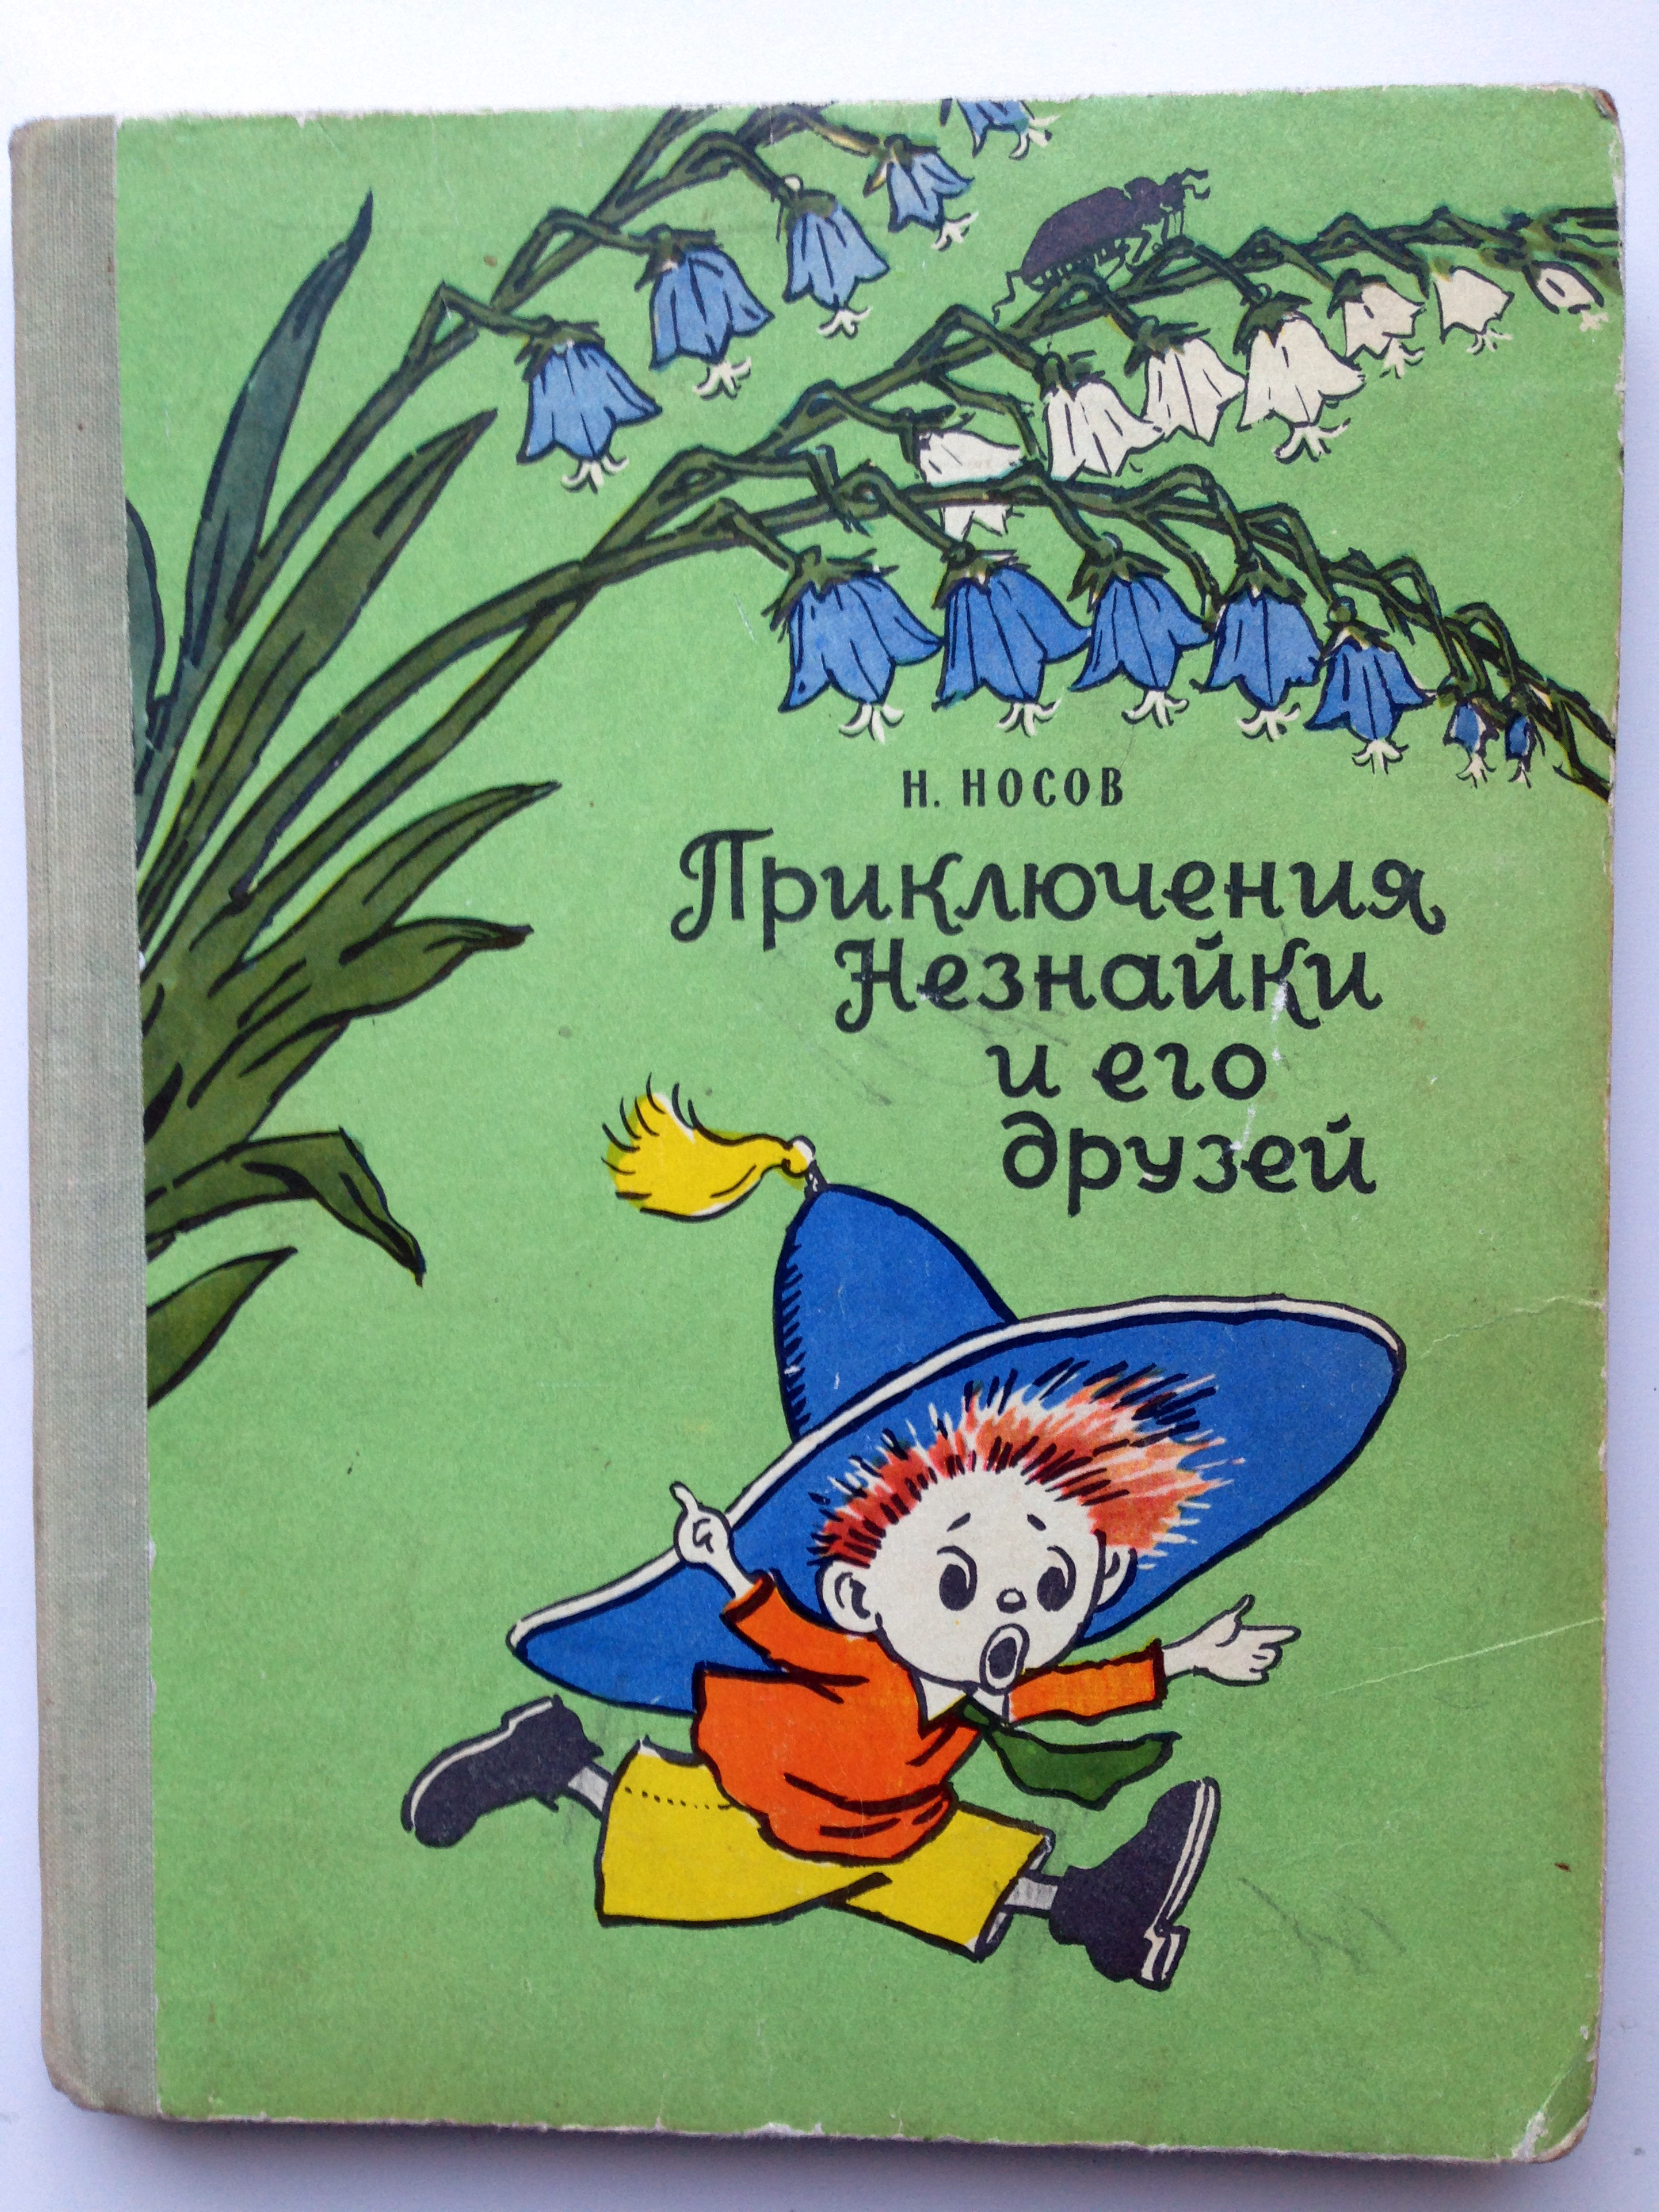 Dunno's Adventures by Nosov with Laptev's illustrations